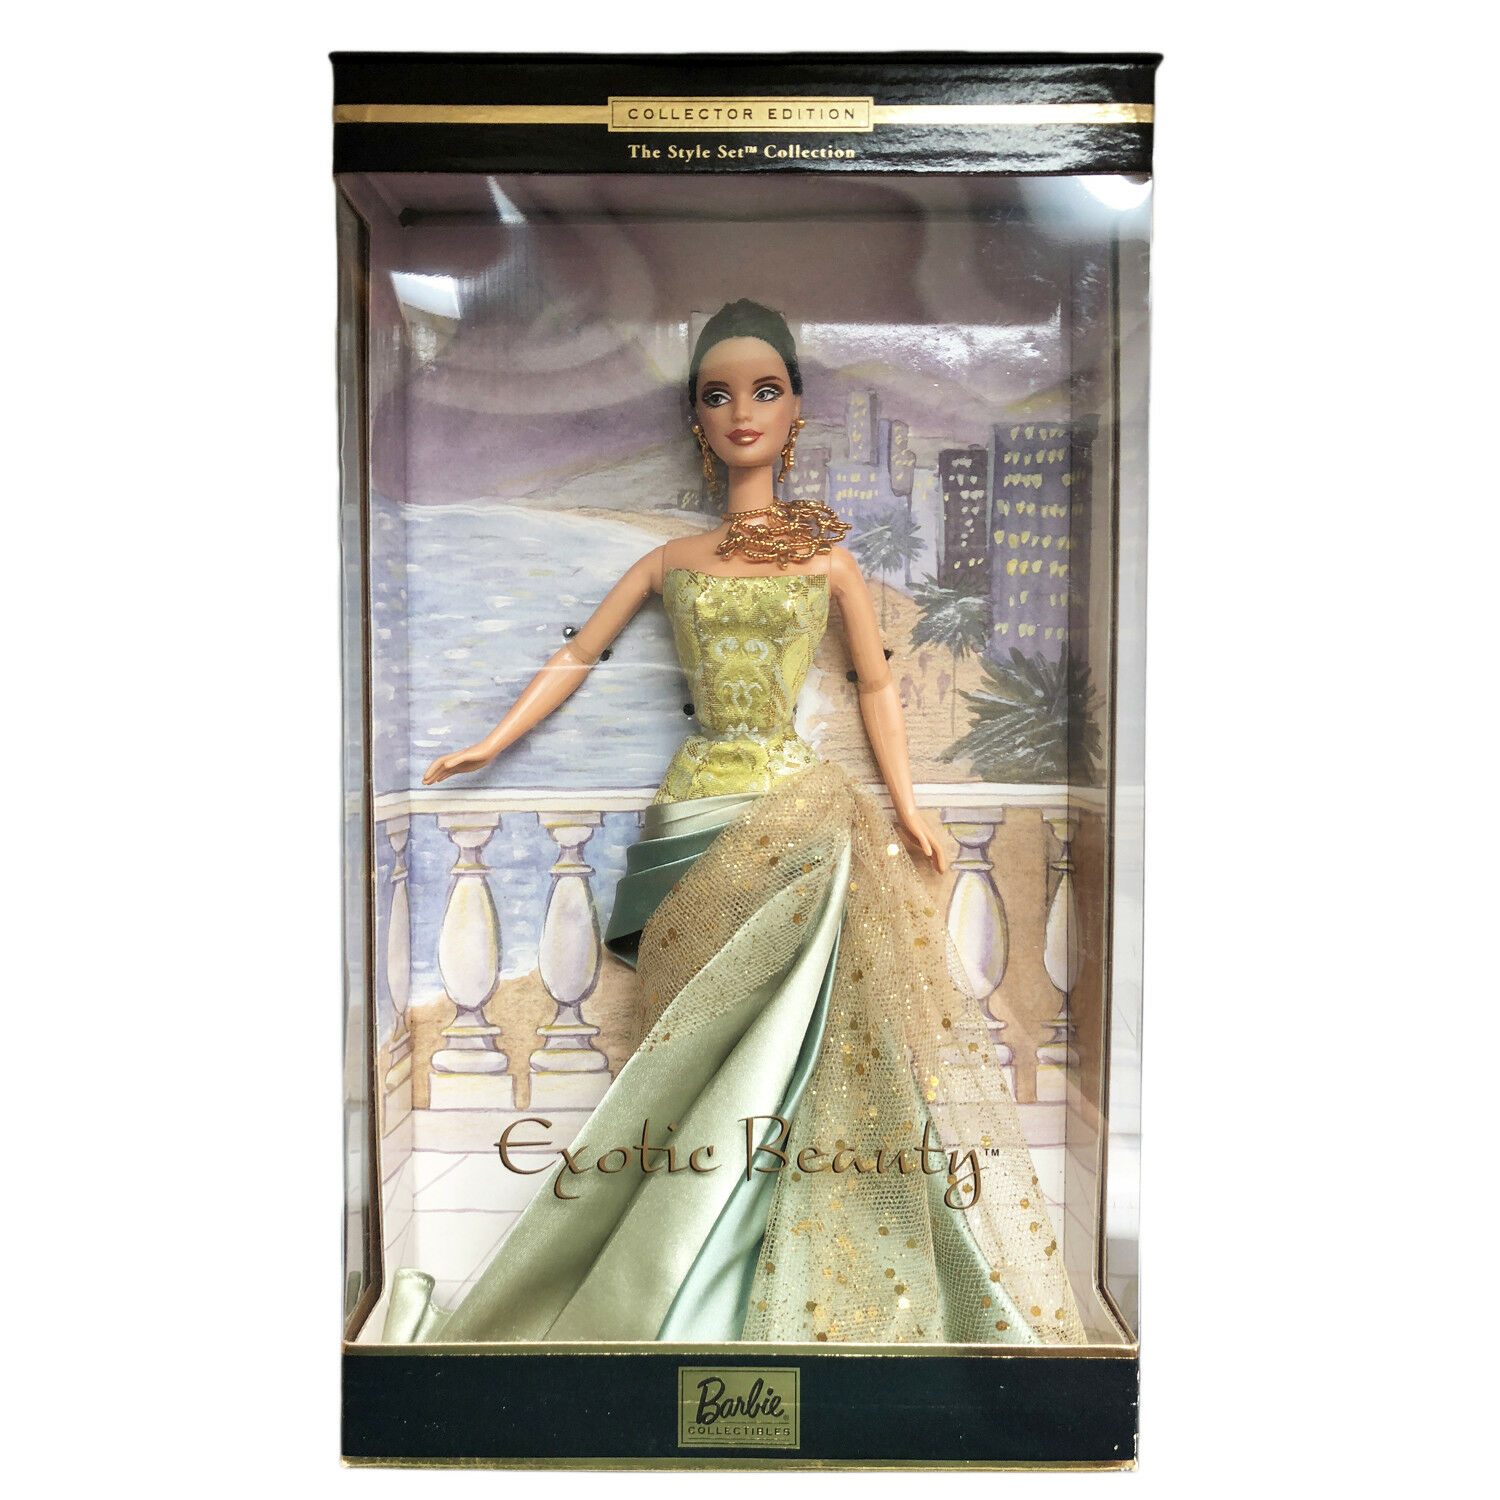 100% Authentic Exotic Beauty Barbie Doll In Box 2002